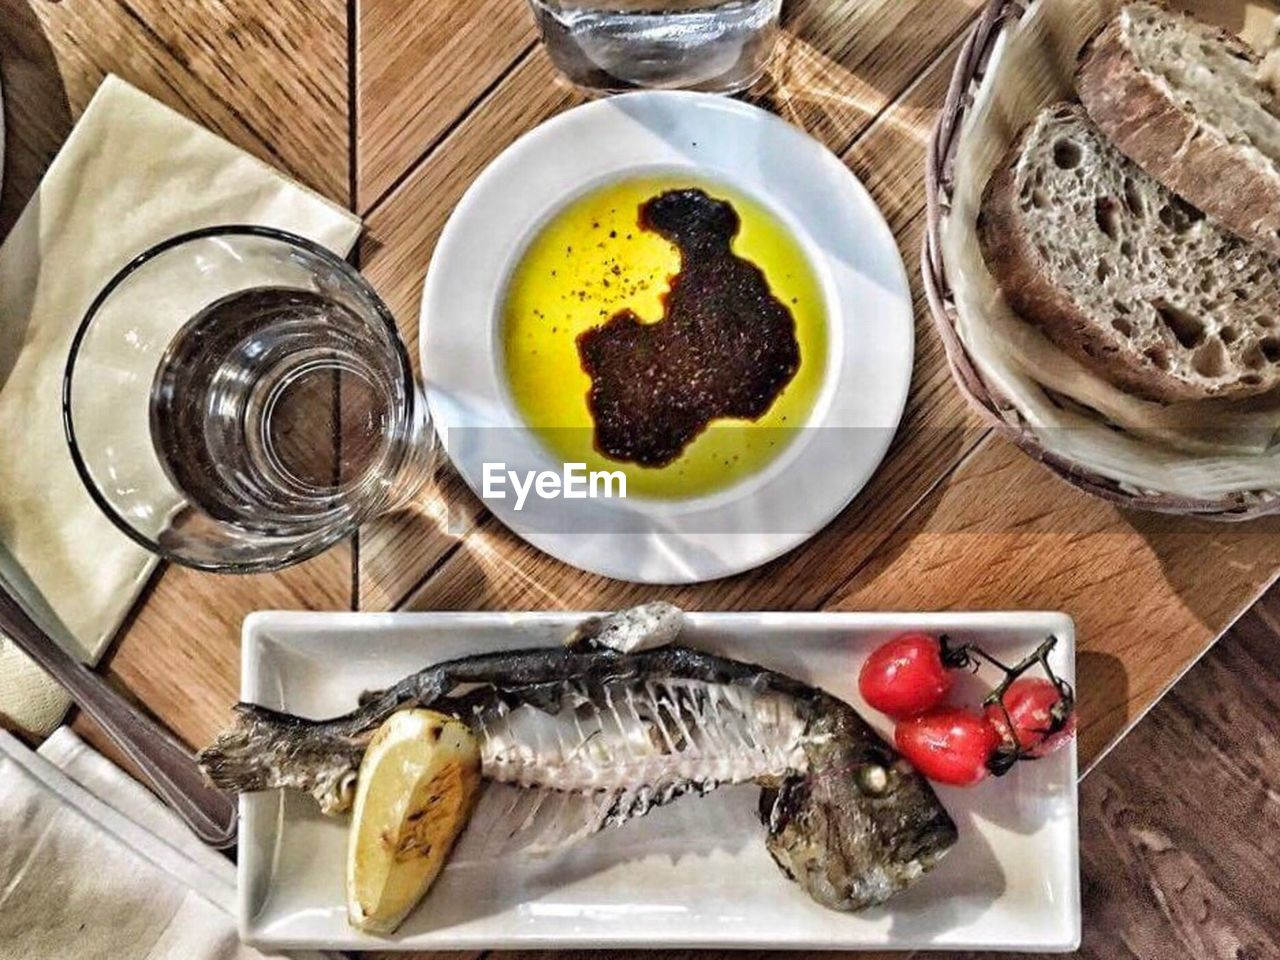 seafood, food and drink, food, fish, plate, freshness, healthy eating, table, directly above, ready-to-eat, no people, indoors, cooked, close-up, day